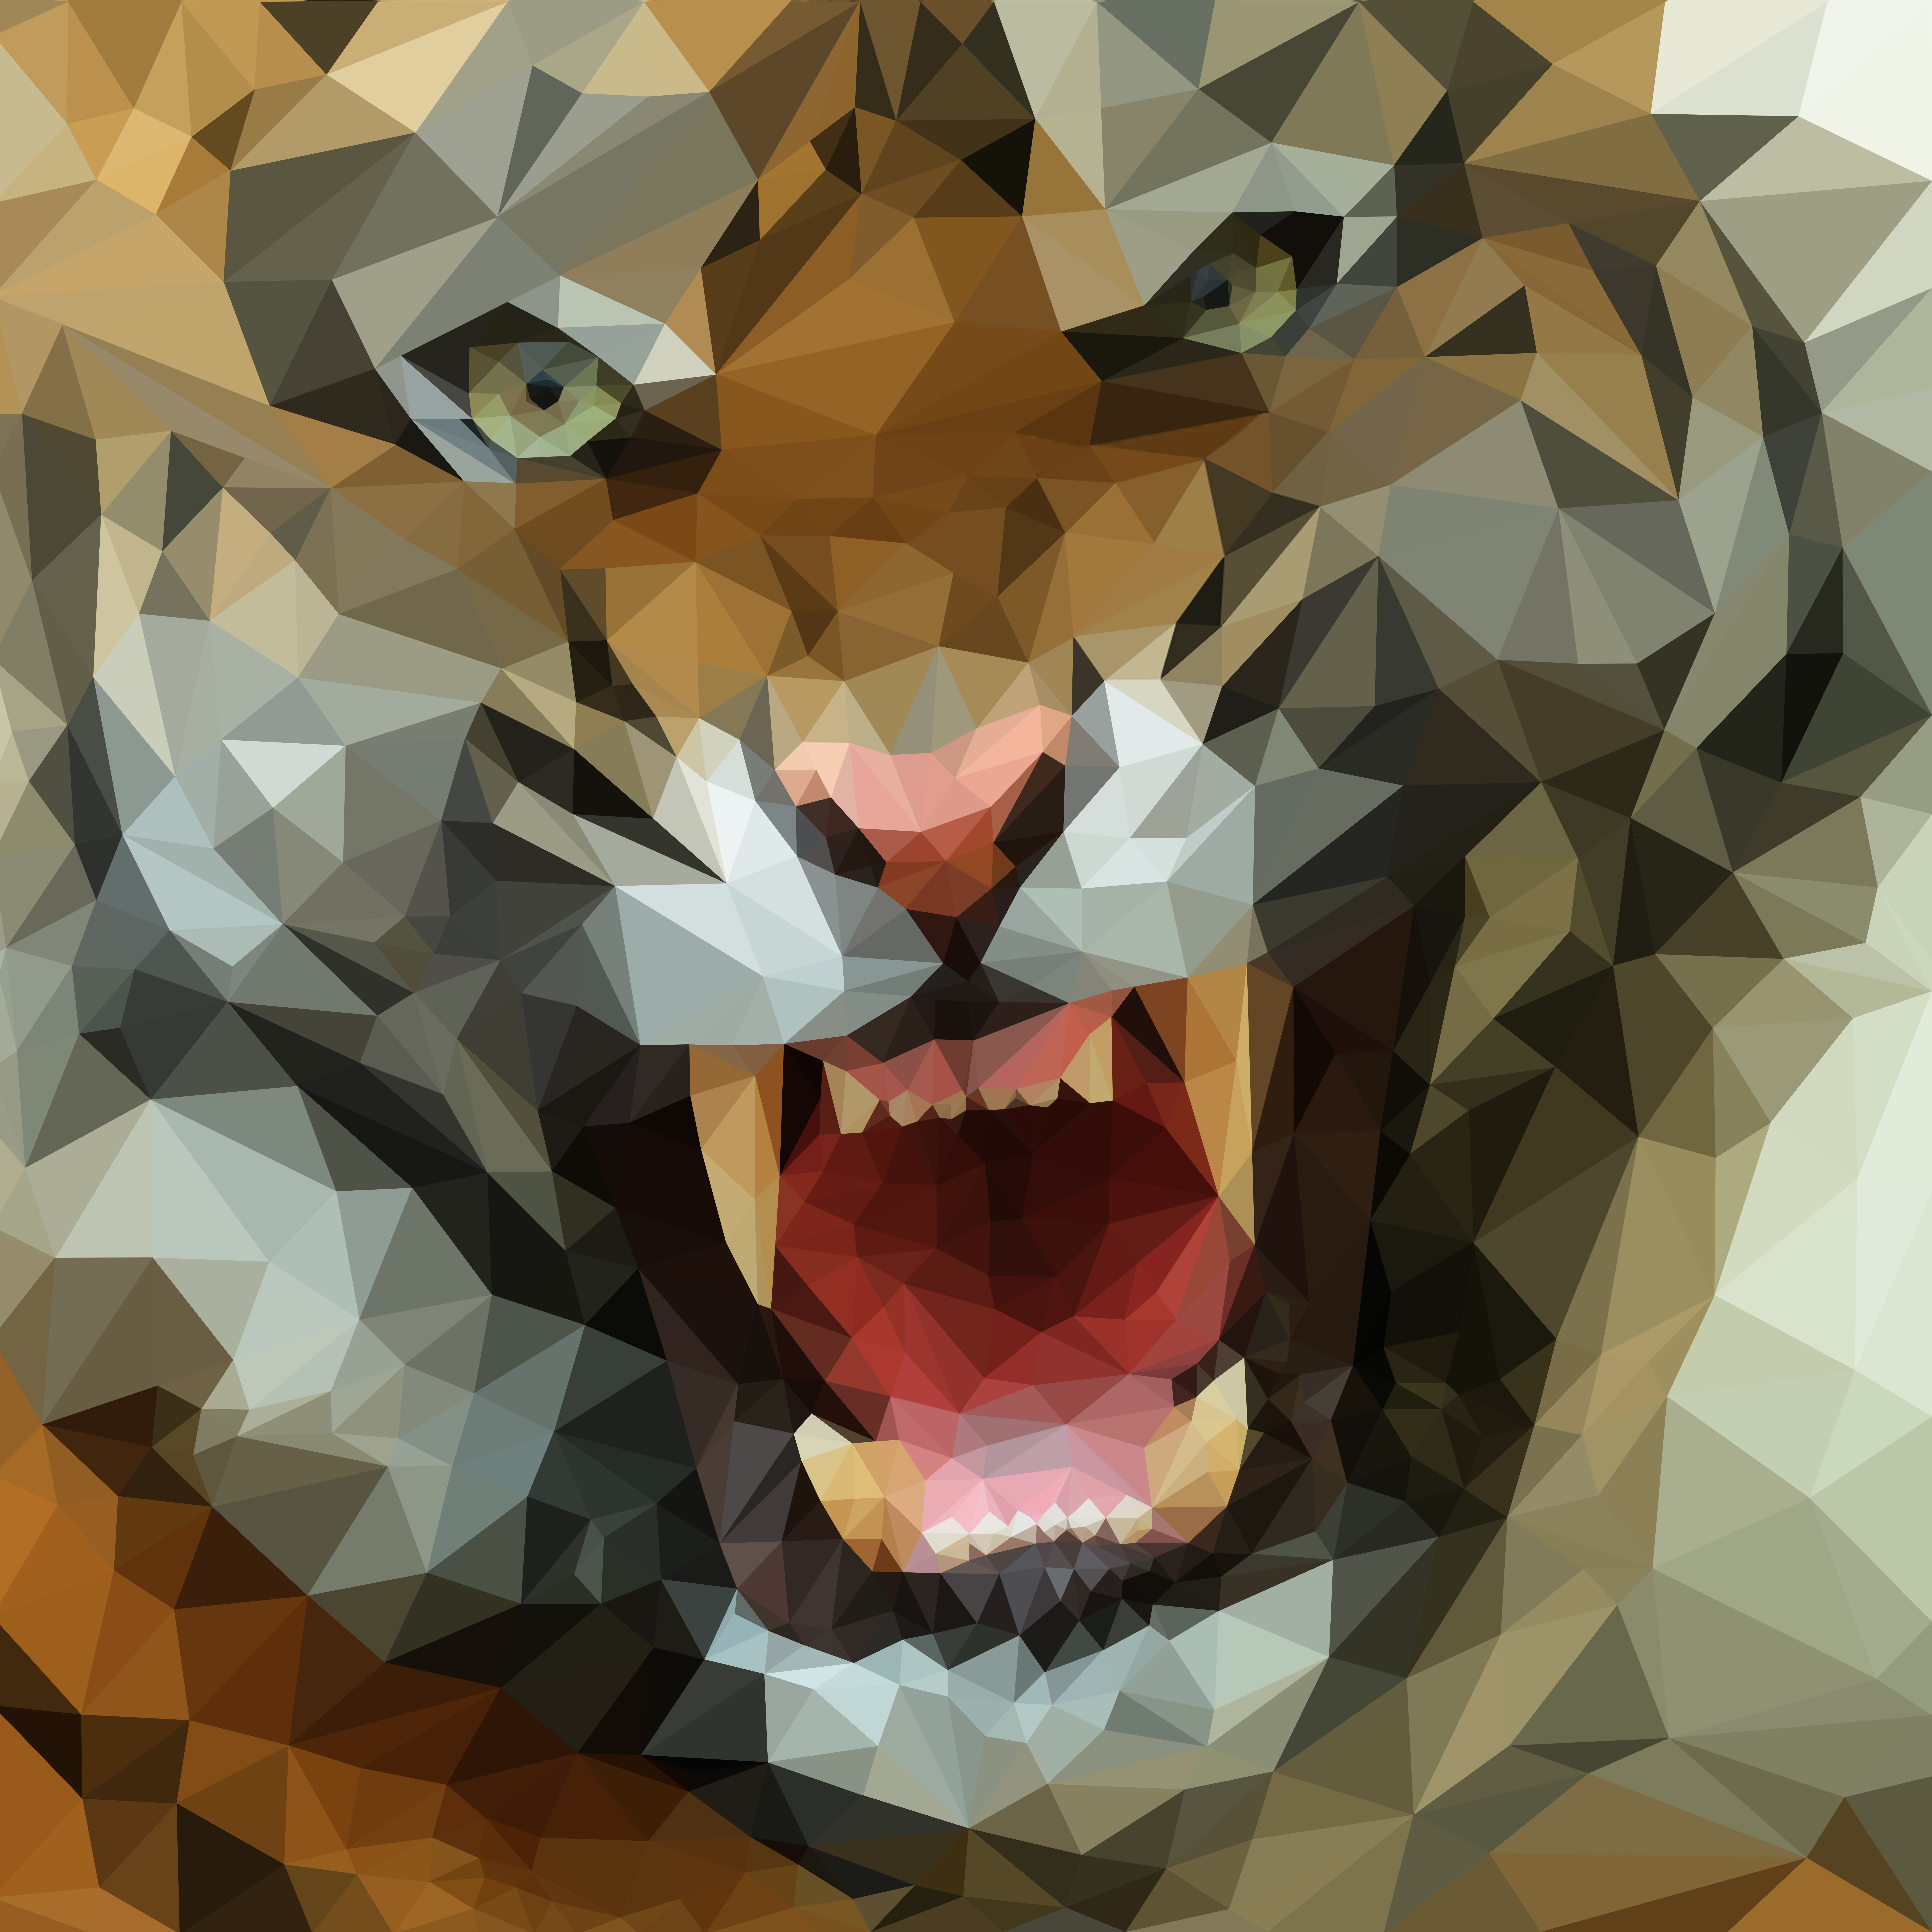 Polygon Tiger Wallpapers Images Photos Pictures Backgrounds